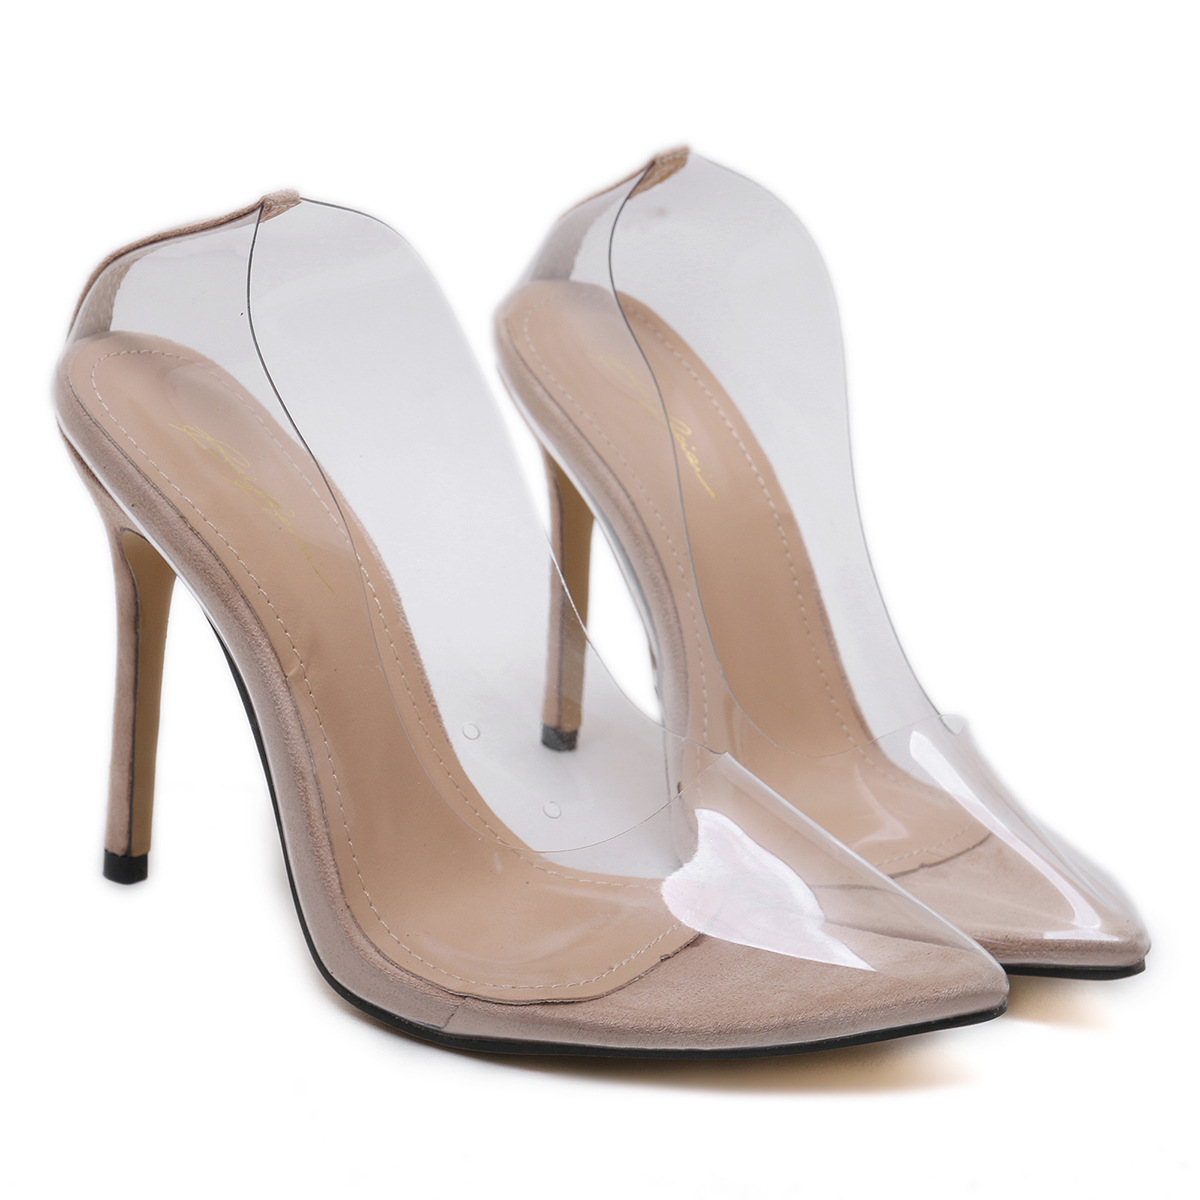 5594de3272d Detail Feedback Questions about Clear PVC Transparent Pumps Sandals Perspex  Heel Stilettos High Heels Point Toes Womens Party Shoes Nightclub Pump on  ...